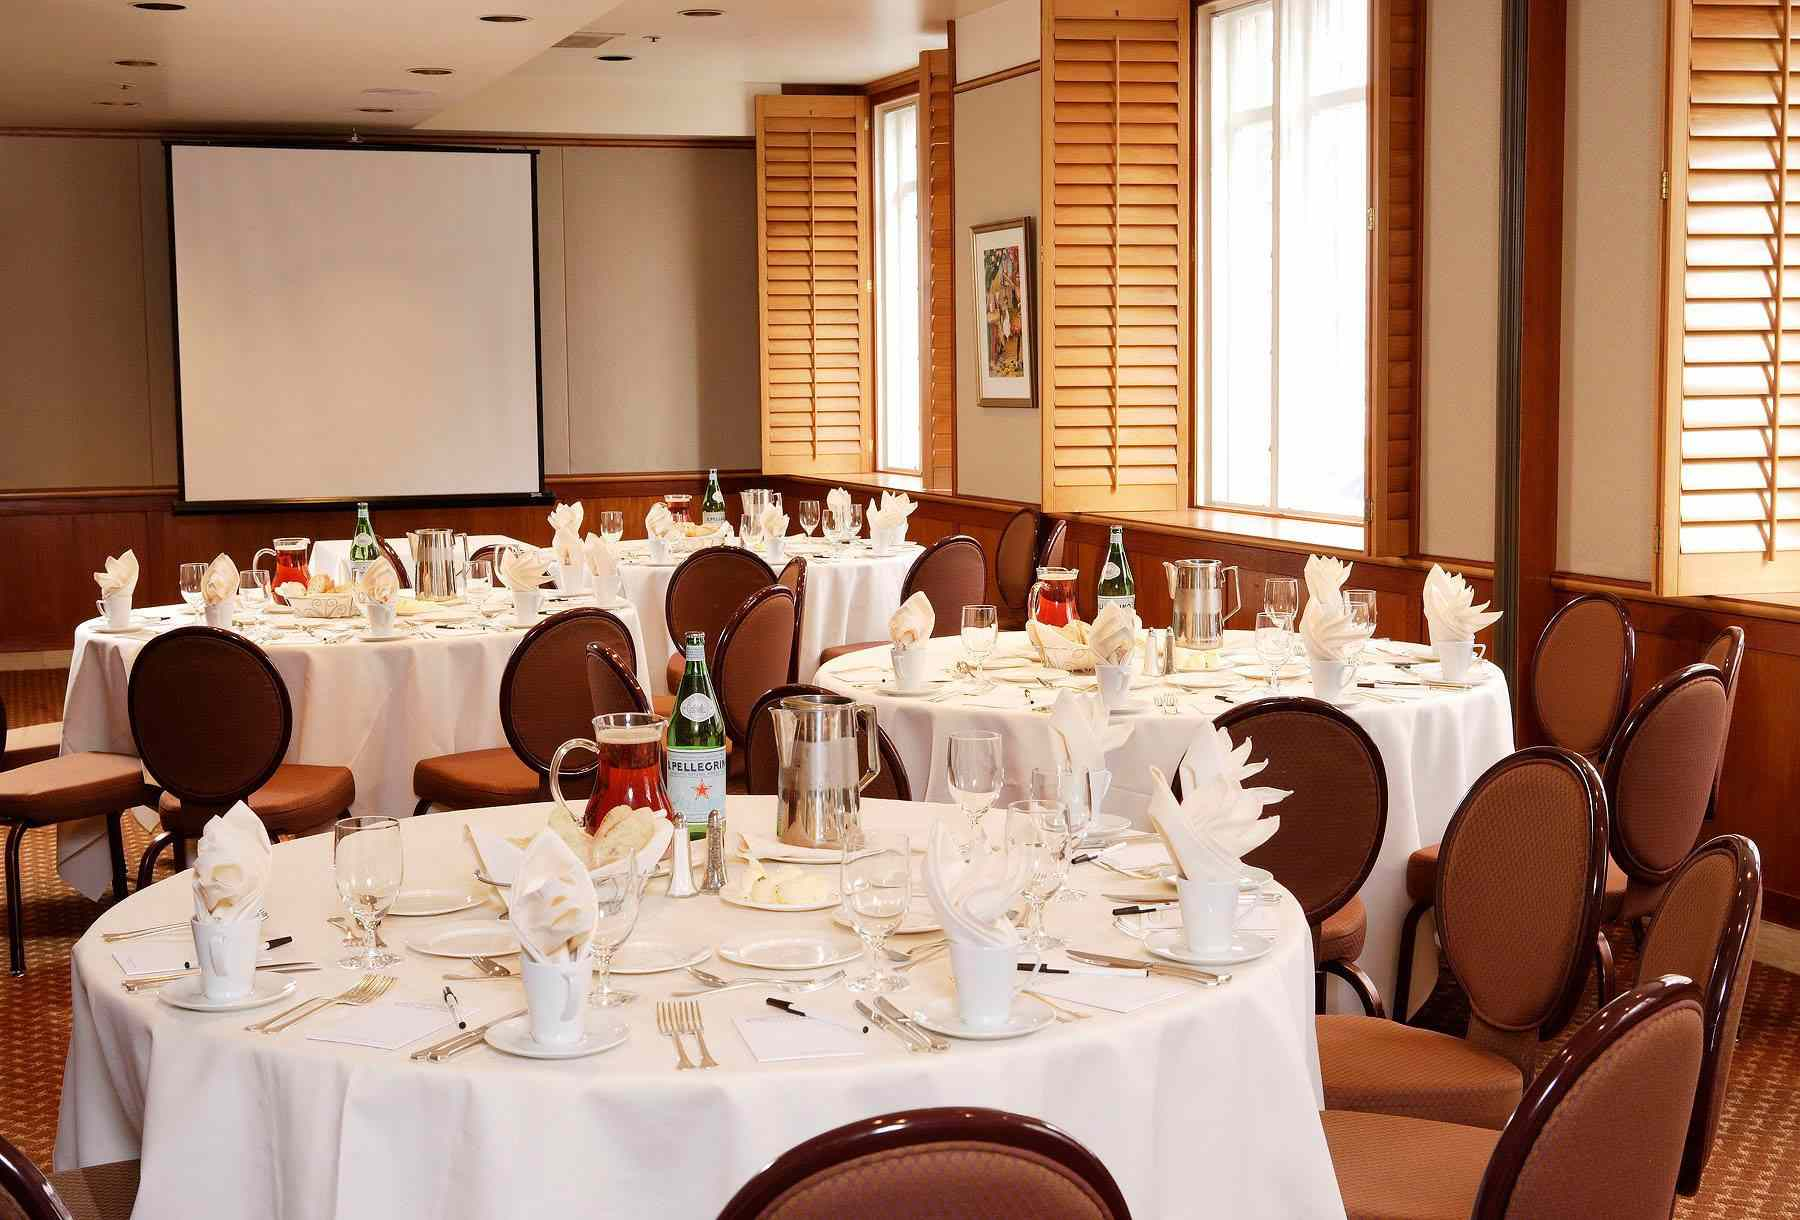 Headwaters dining room